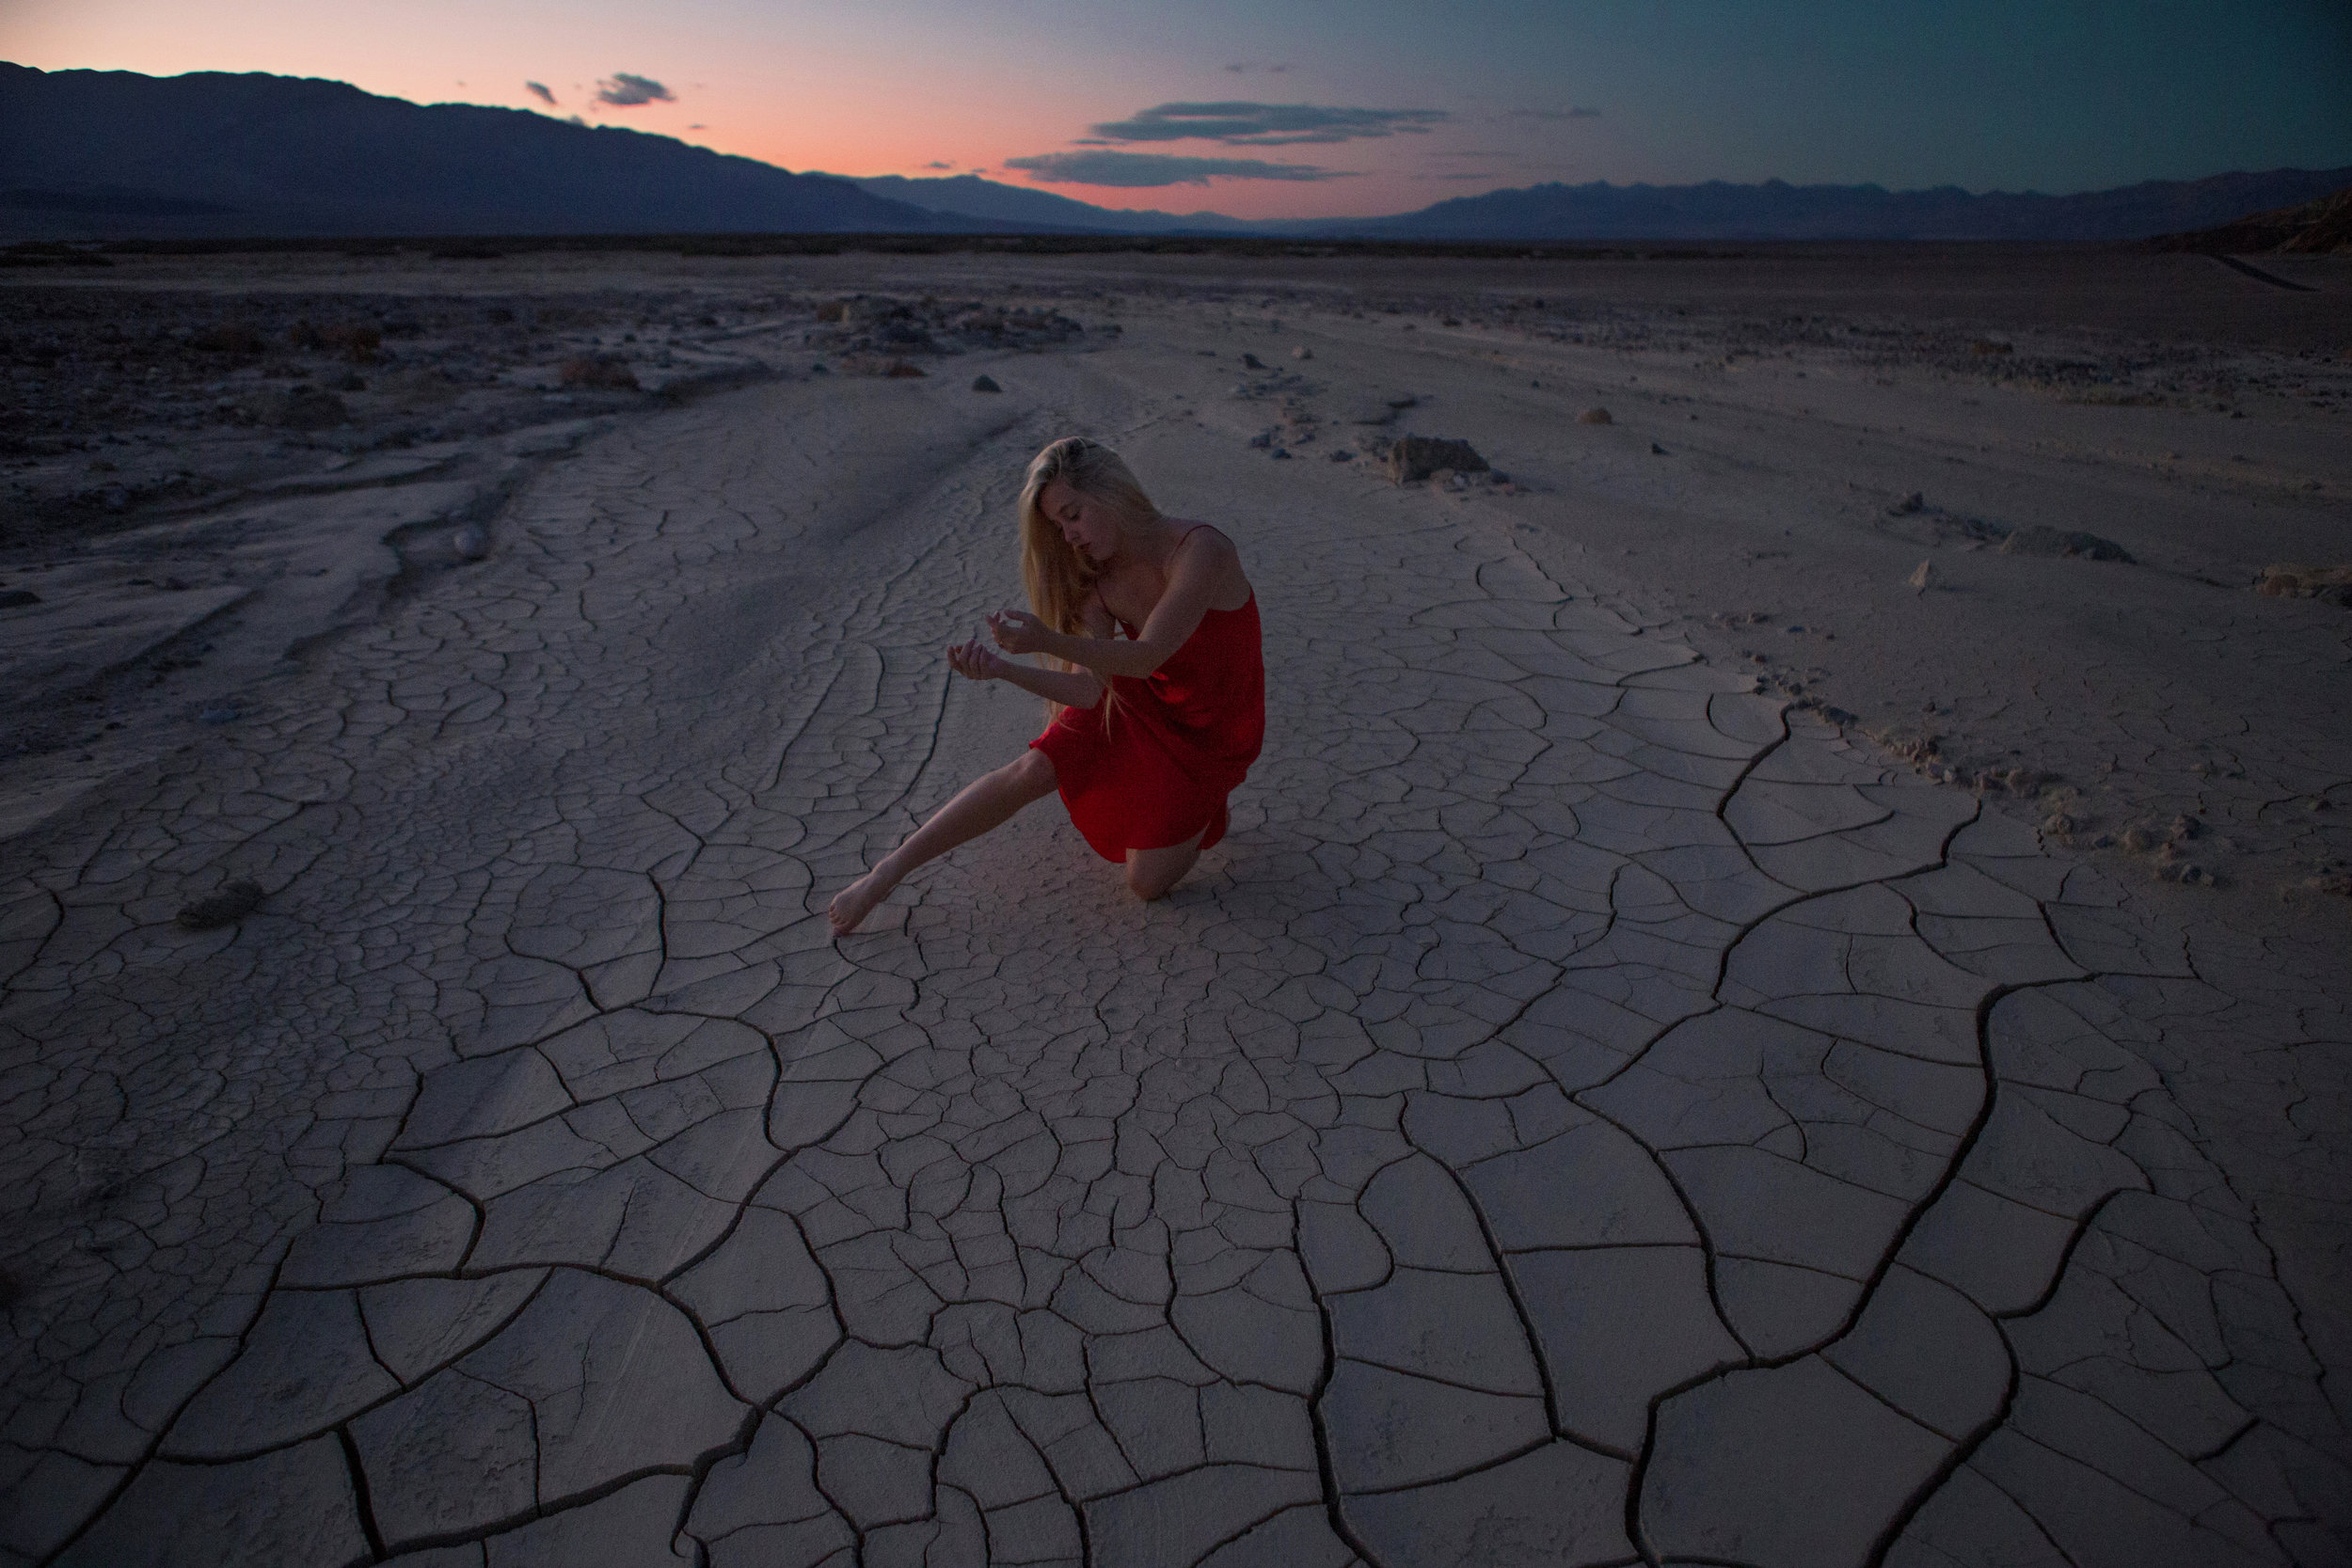 AstroBandit_JordanRose_DeathValley_MudCracks__RedSilk_Sunset_Dancing_6.jpg